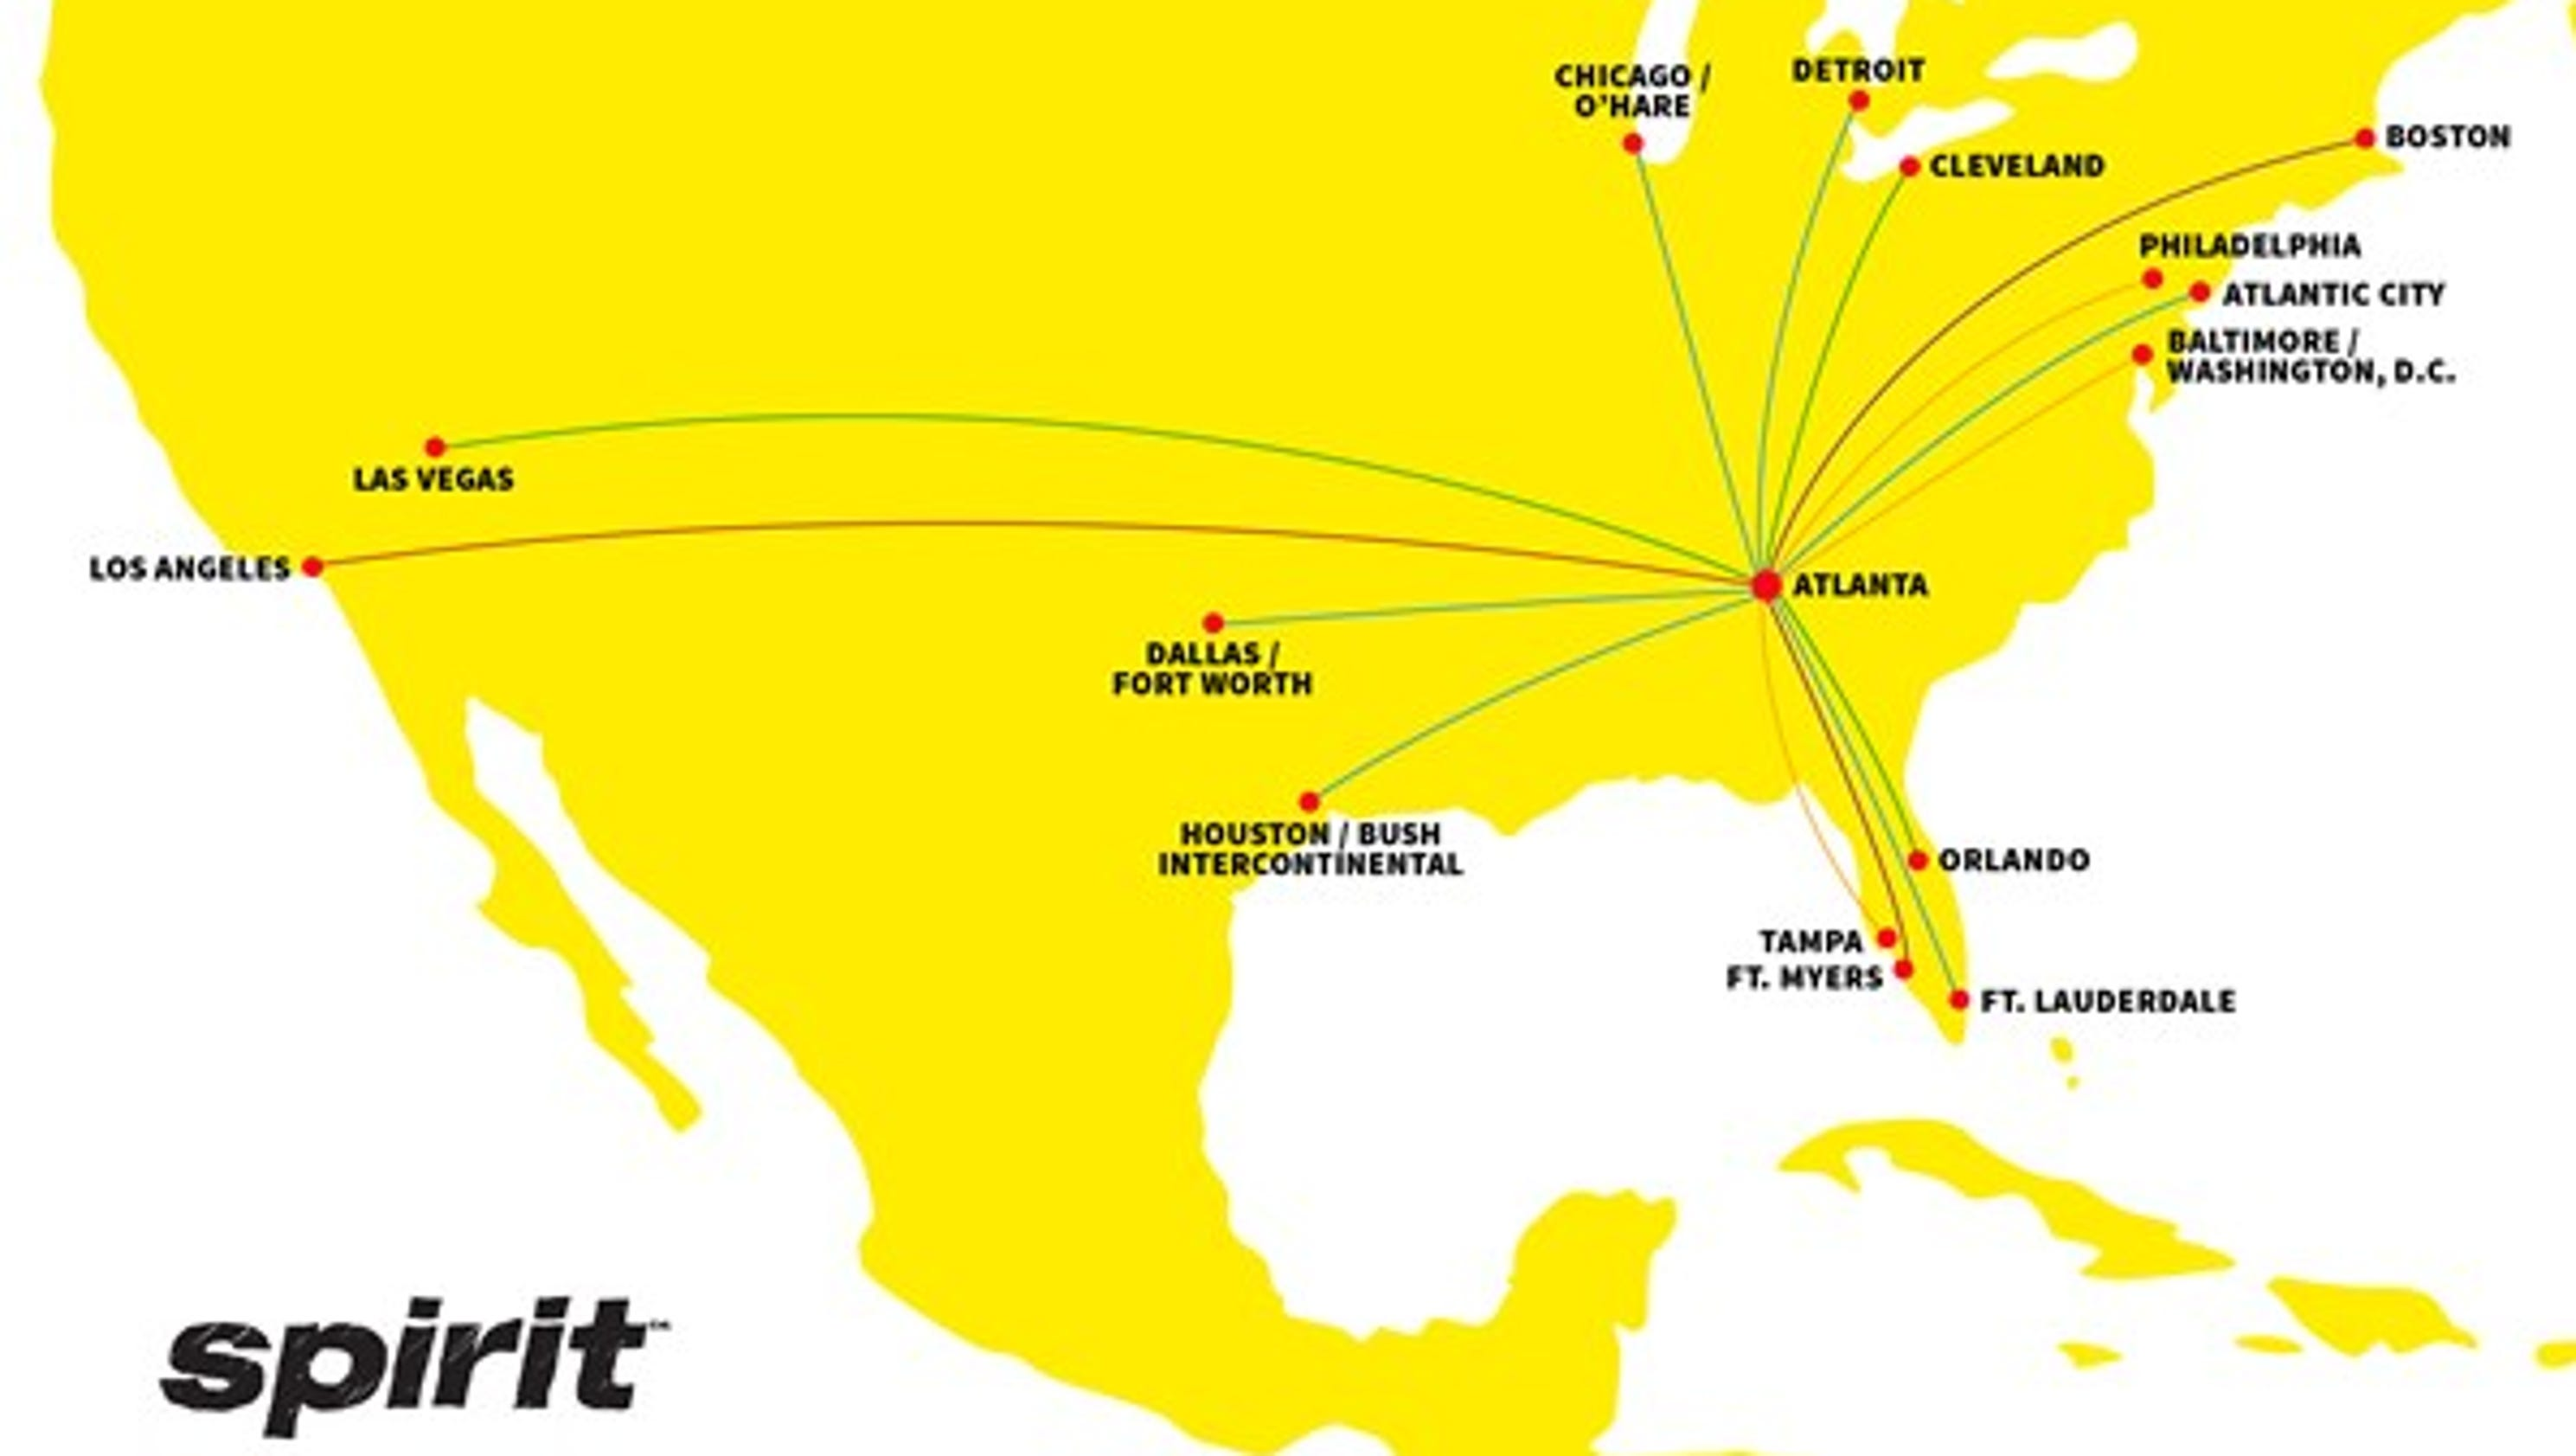 growing spirit up to 15 nonstop routes in atlanta 12 at lax